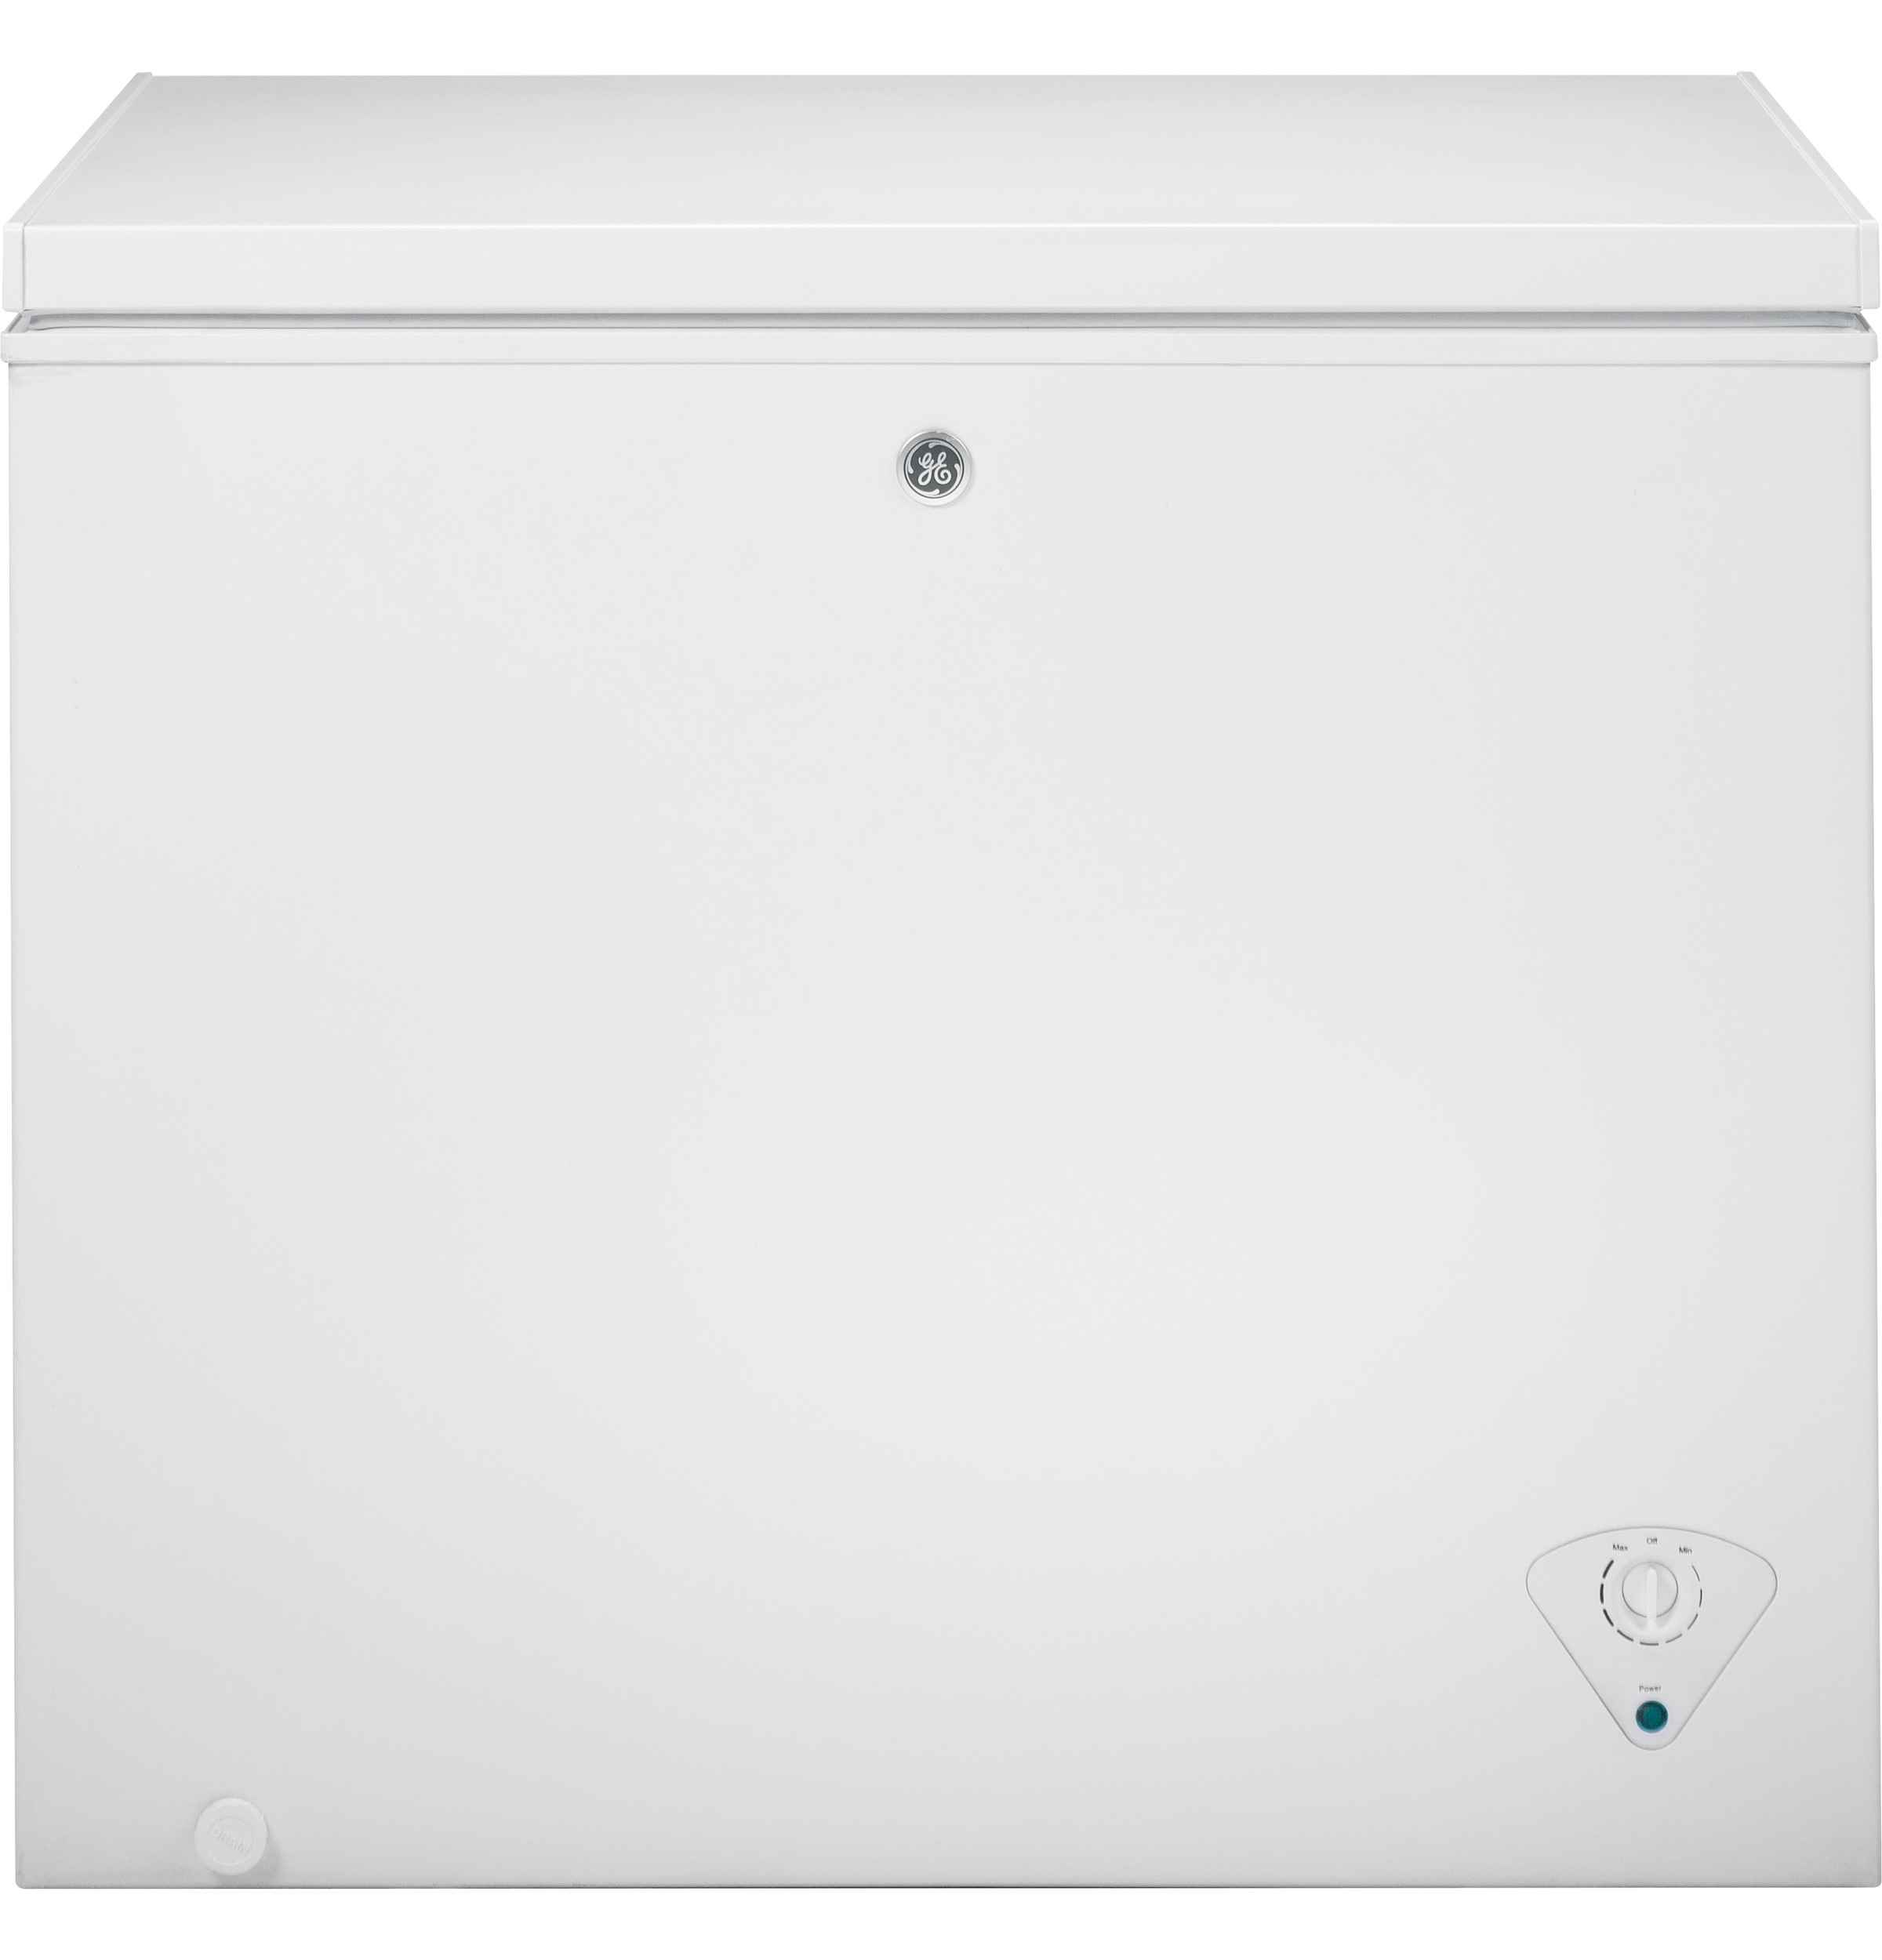 FREEZER - GE CHEST 7.0CF WHITE - HOME IMPROVEMENT OUTLET